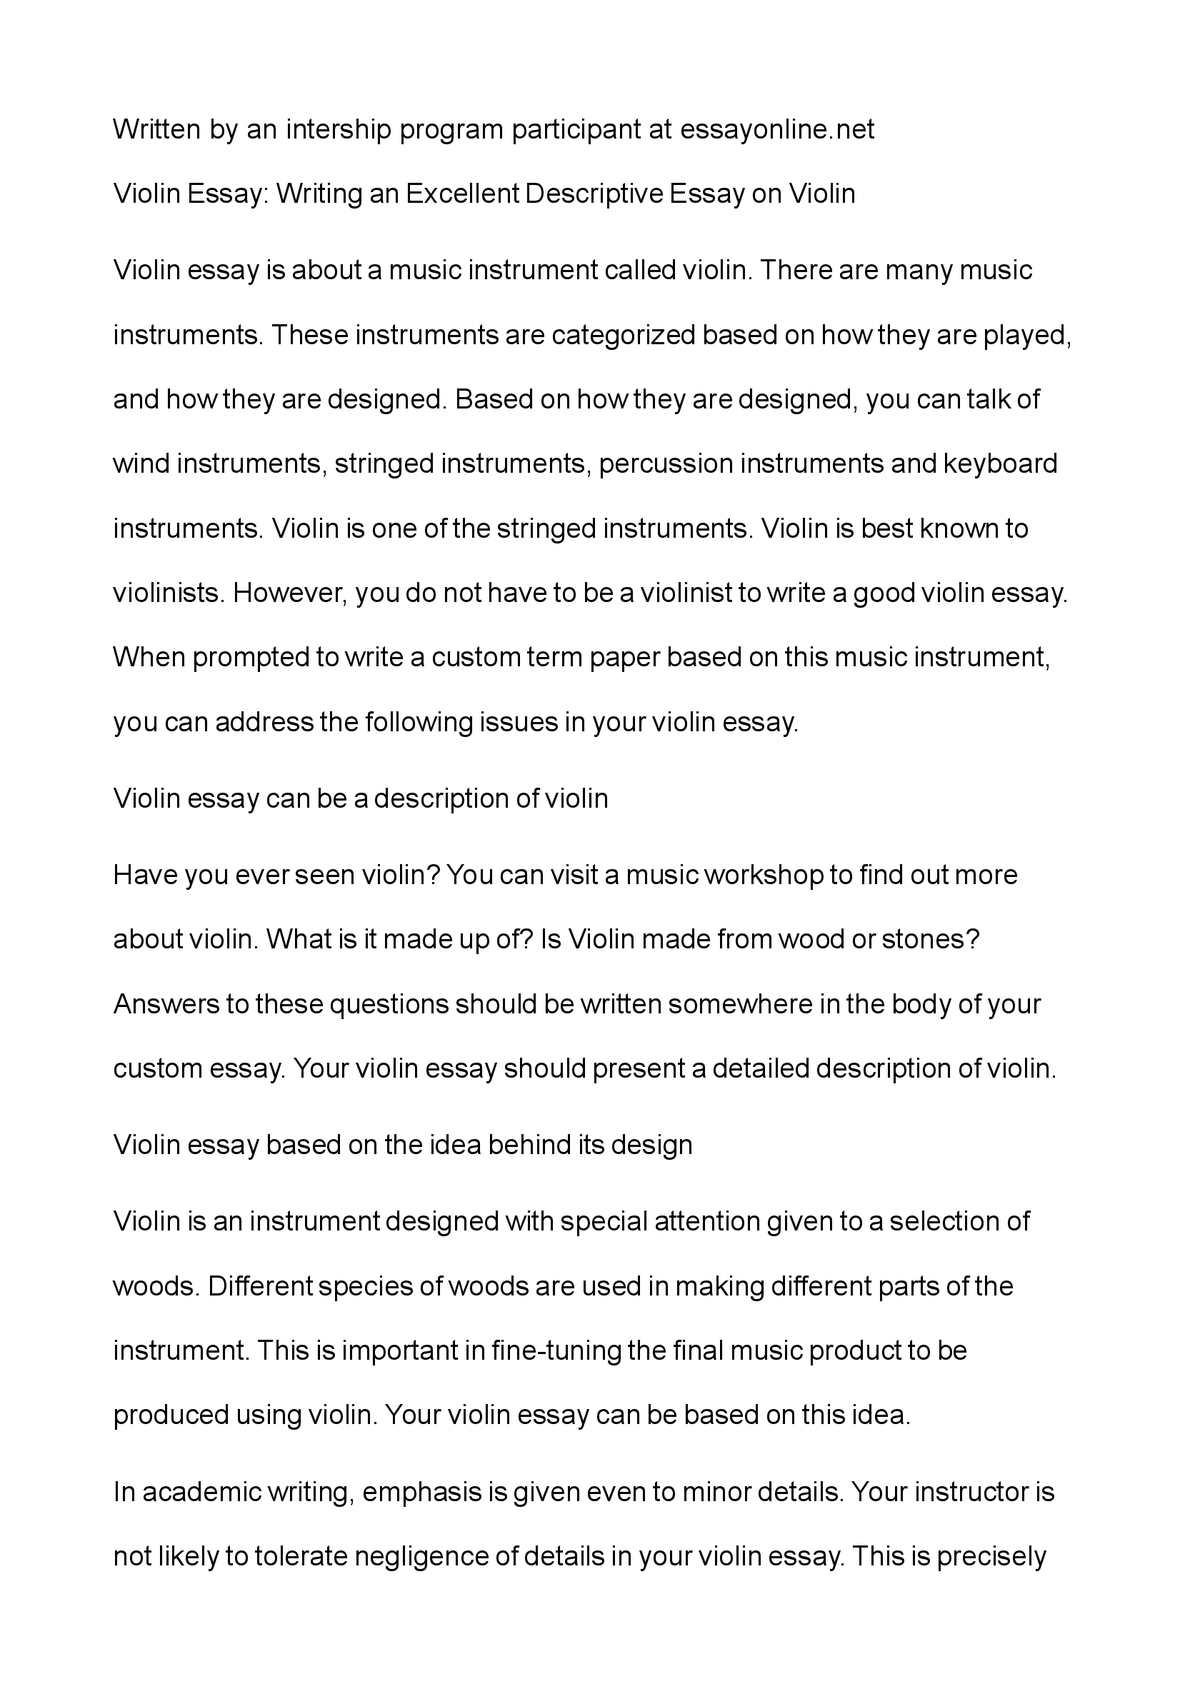 best descriptive essay comparison and contrast essay topics best  calam eacute o violin essay writing an excellent descriptive essay on calameacuteo violin essay writing an